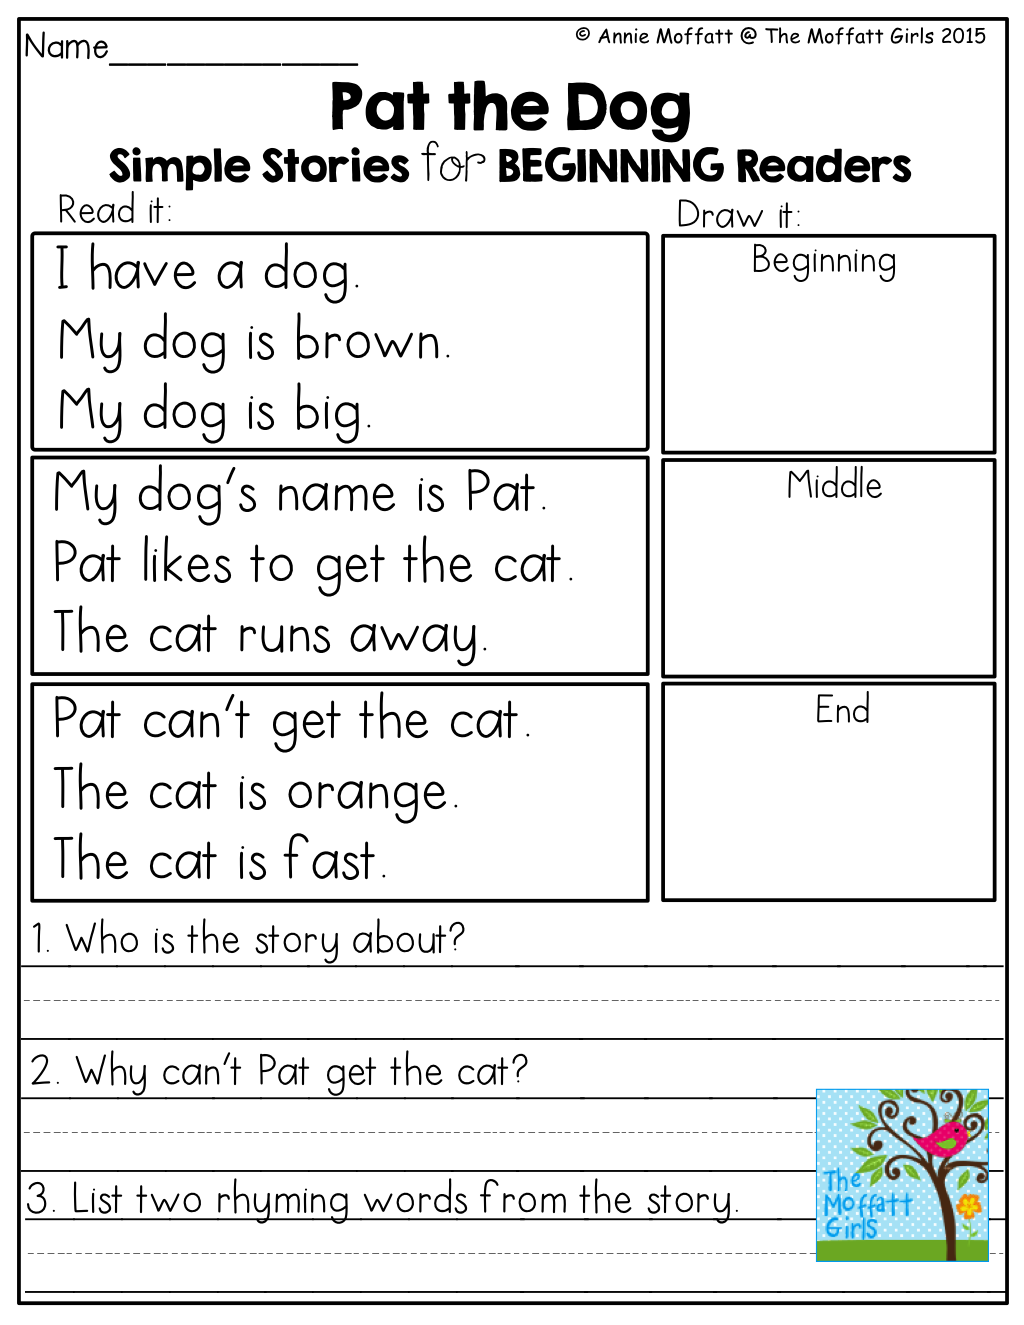 Simple Stories For Beginning Readers Read The Story And Show Comprehension By Drawing Pictures